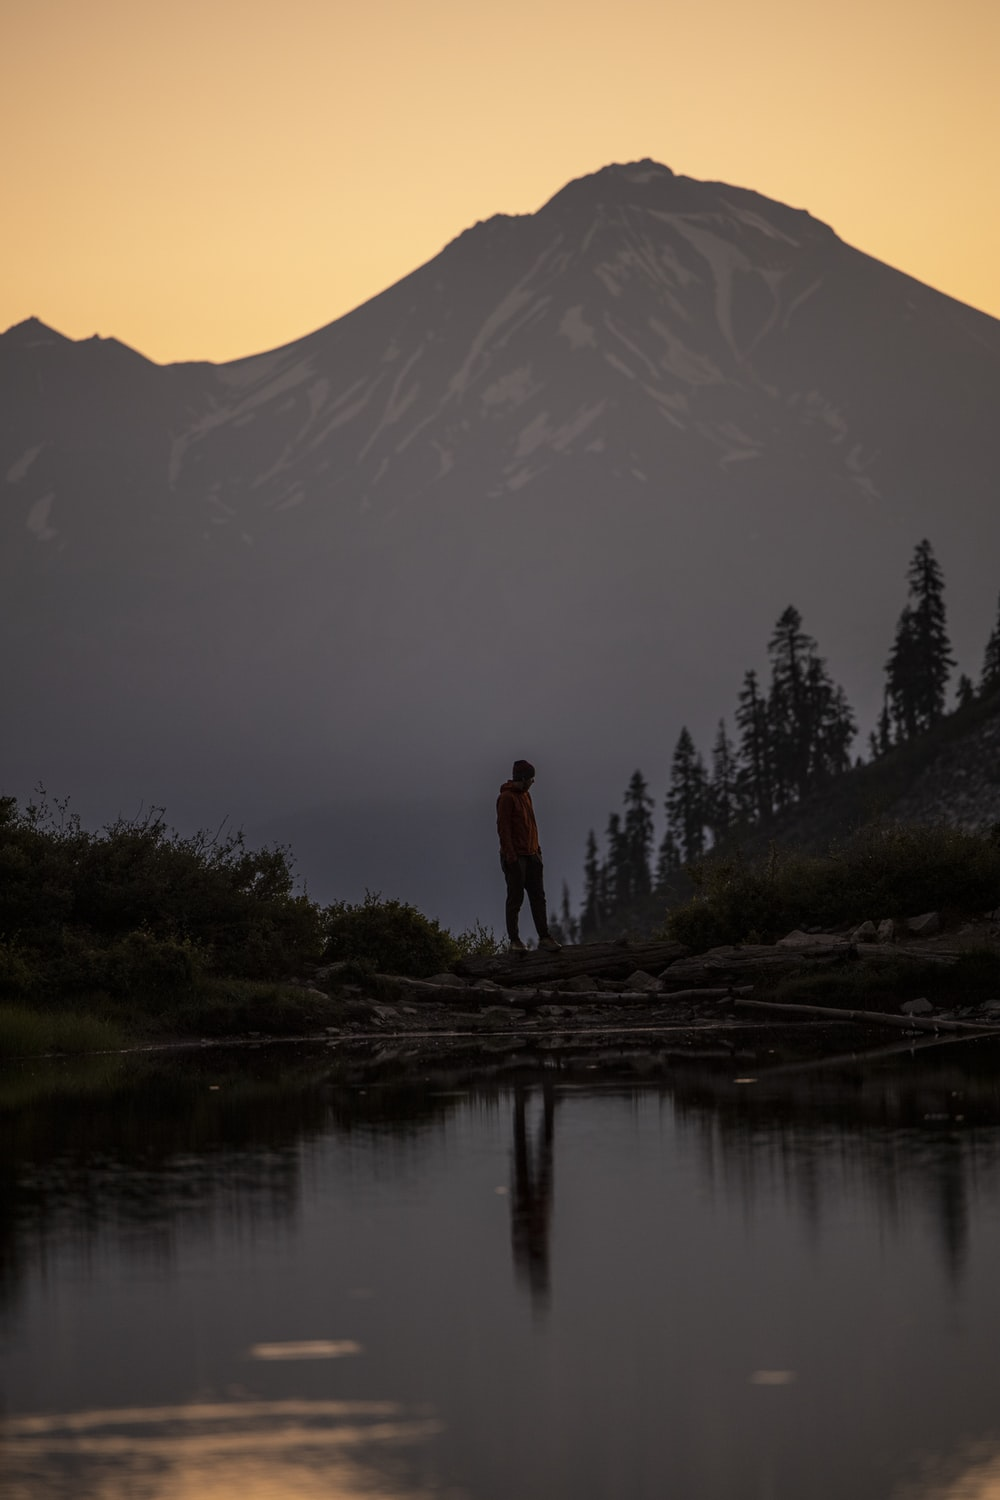 silhouette of man standing on rock near lake during daytime